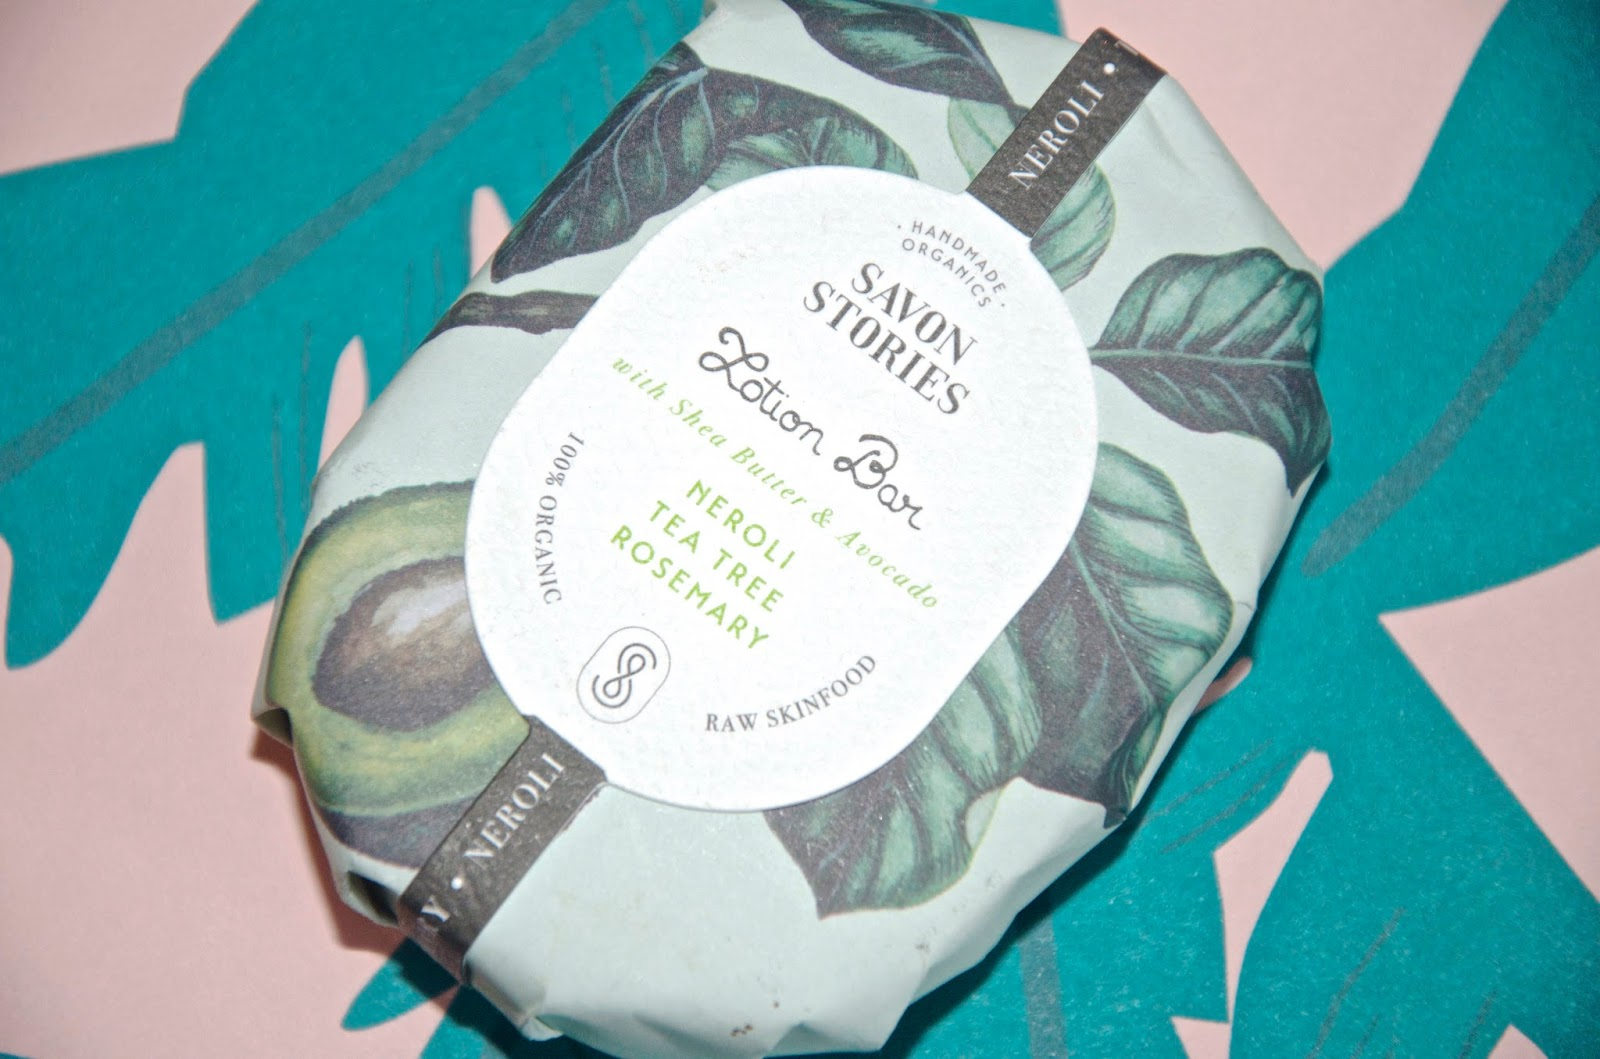 Savon Stories Avocado & Shea Lotion Bar